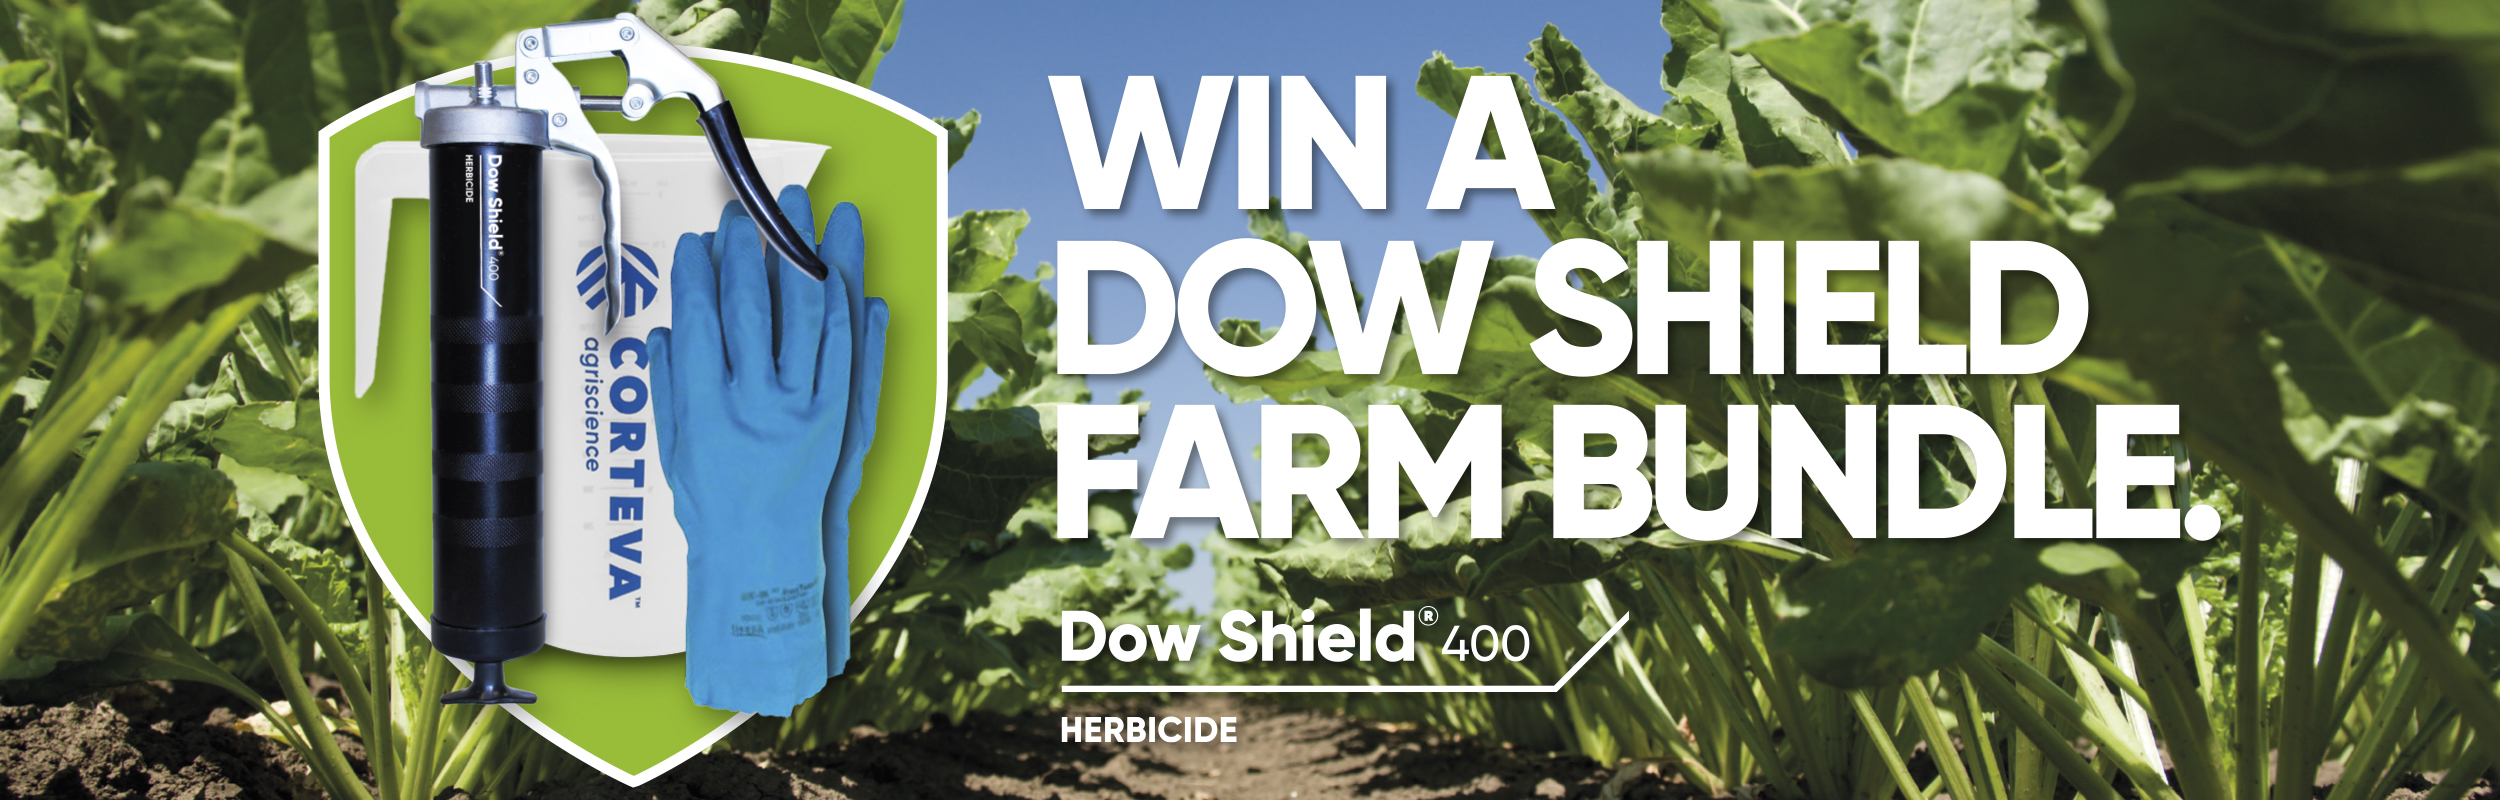 Dow Shield® 400 competition from Corteva Agriscience